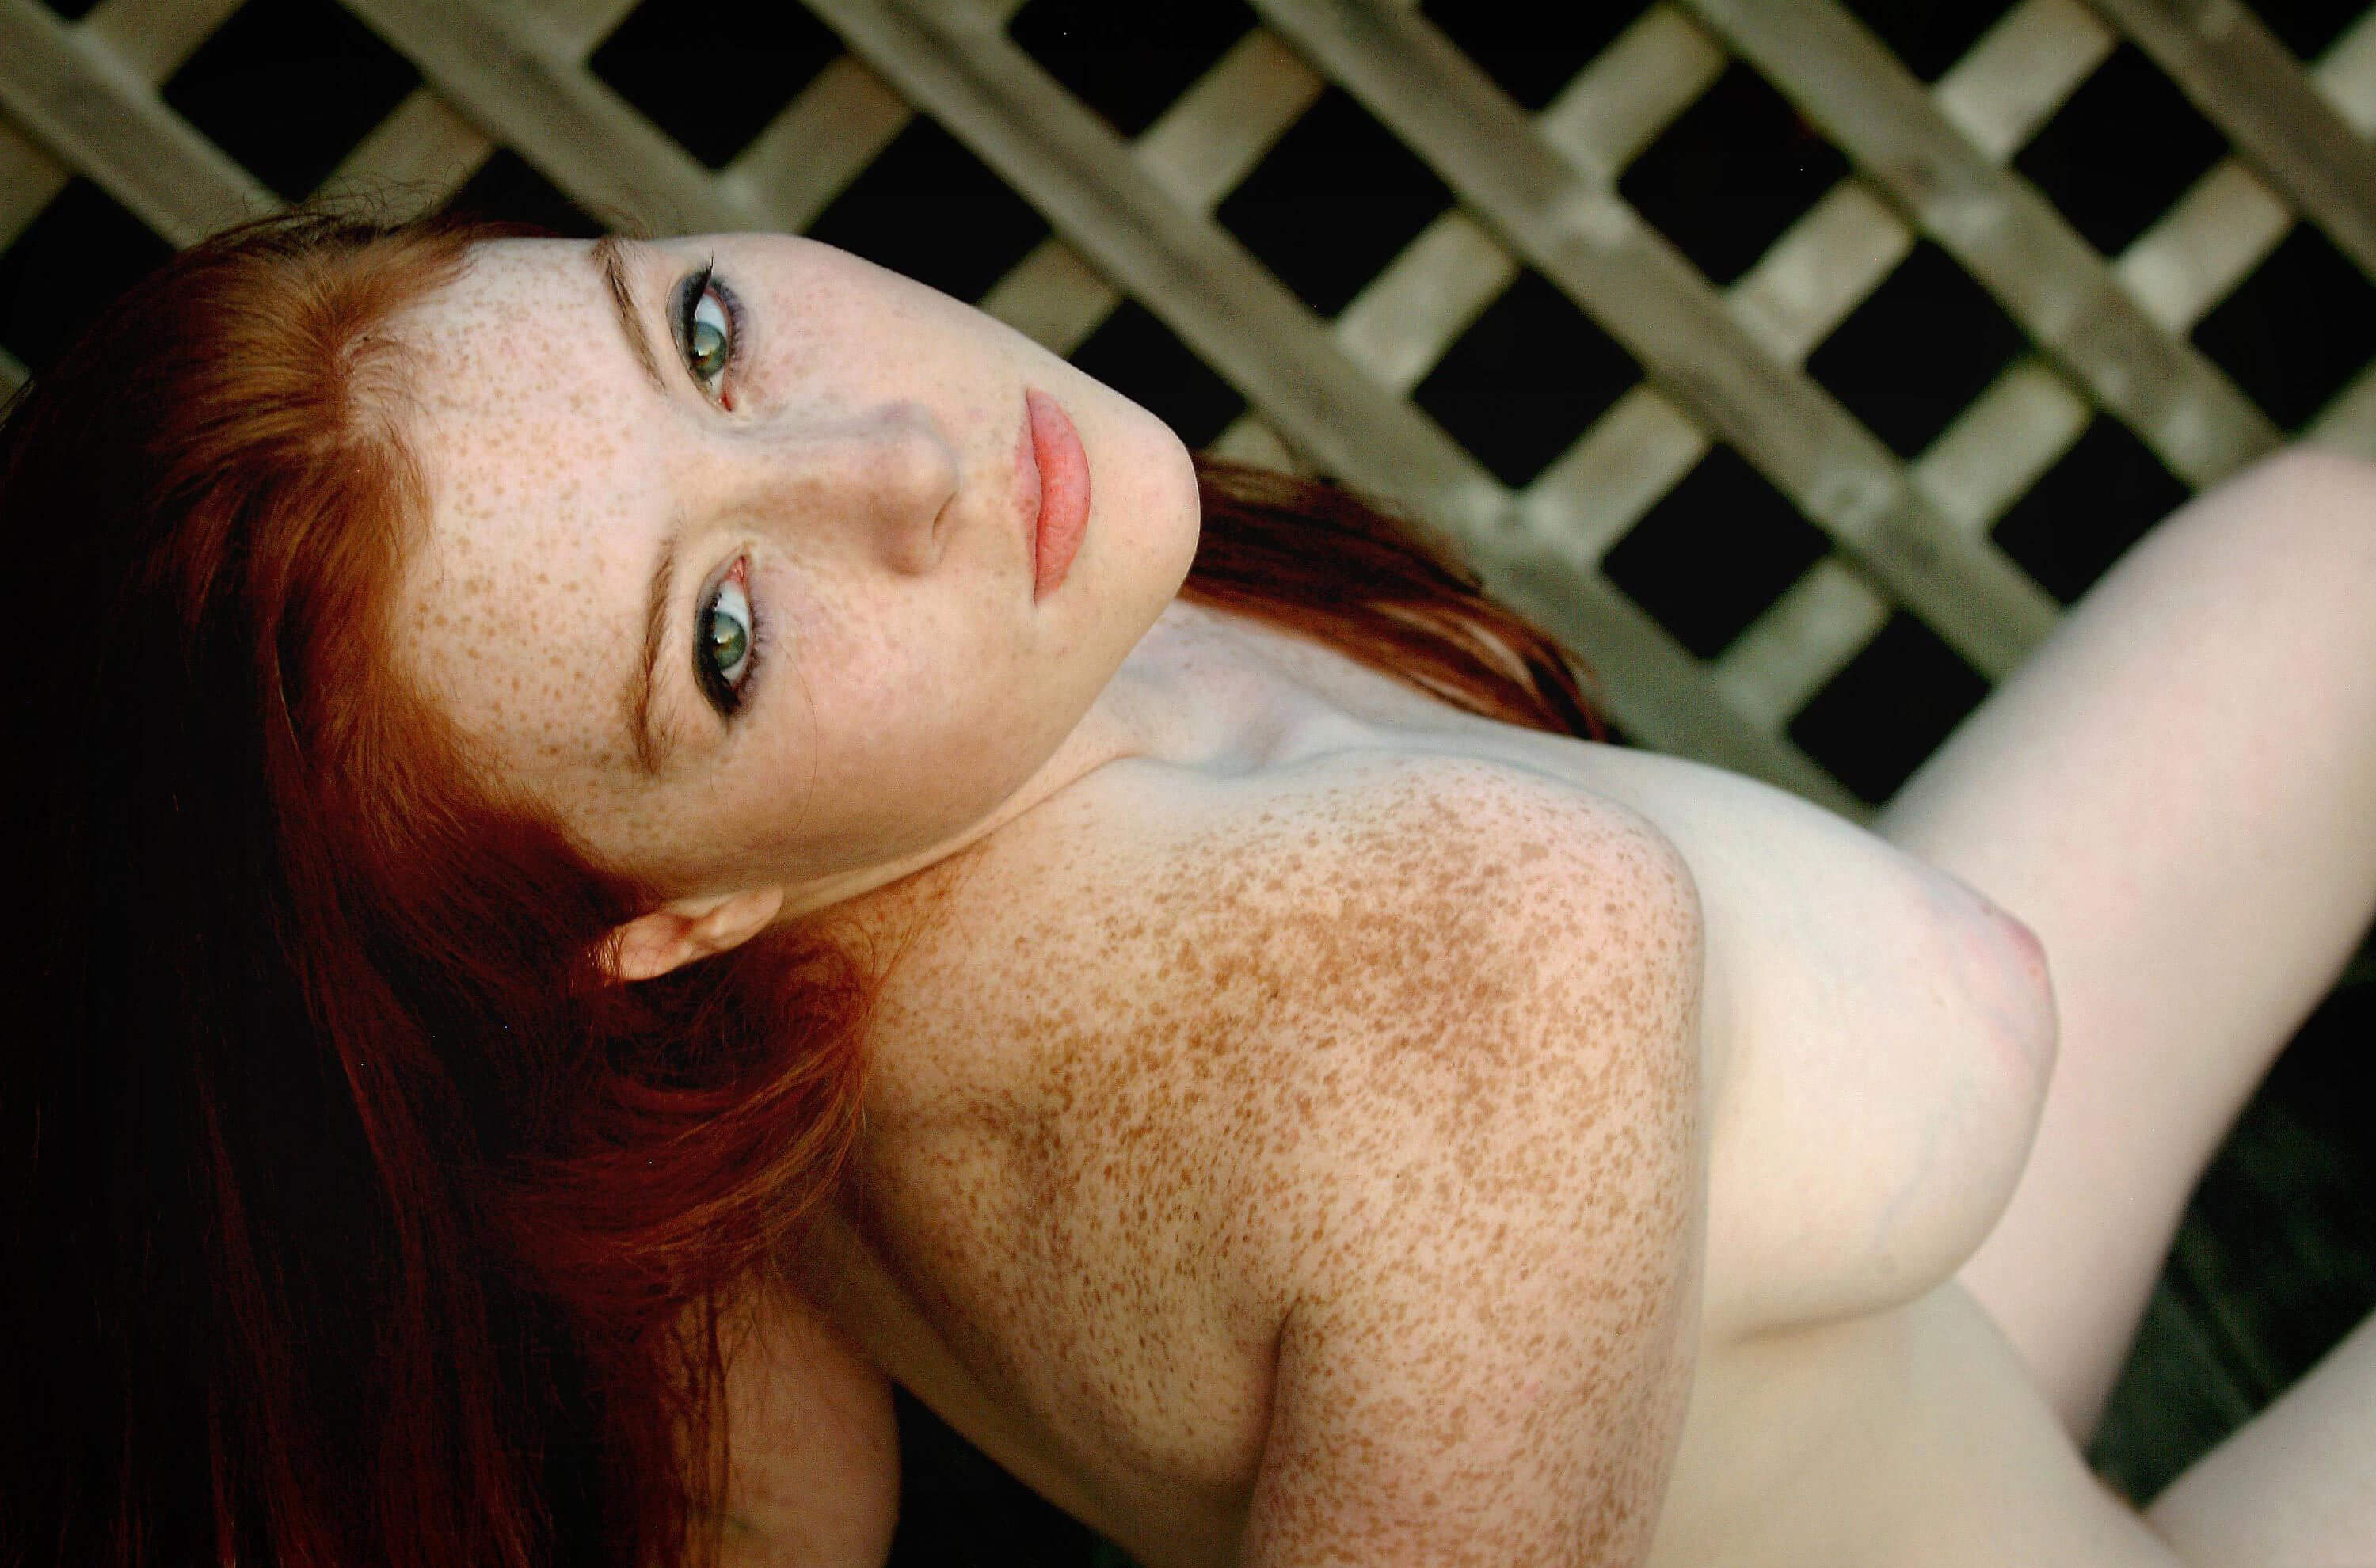 Those pussy nude redhead with freckles